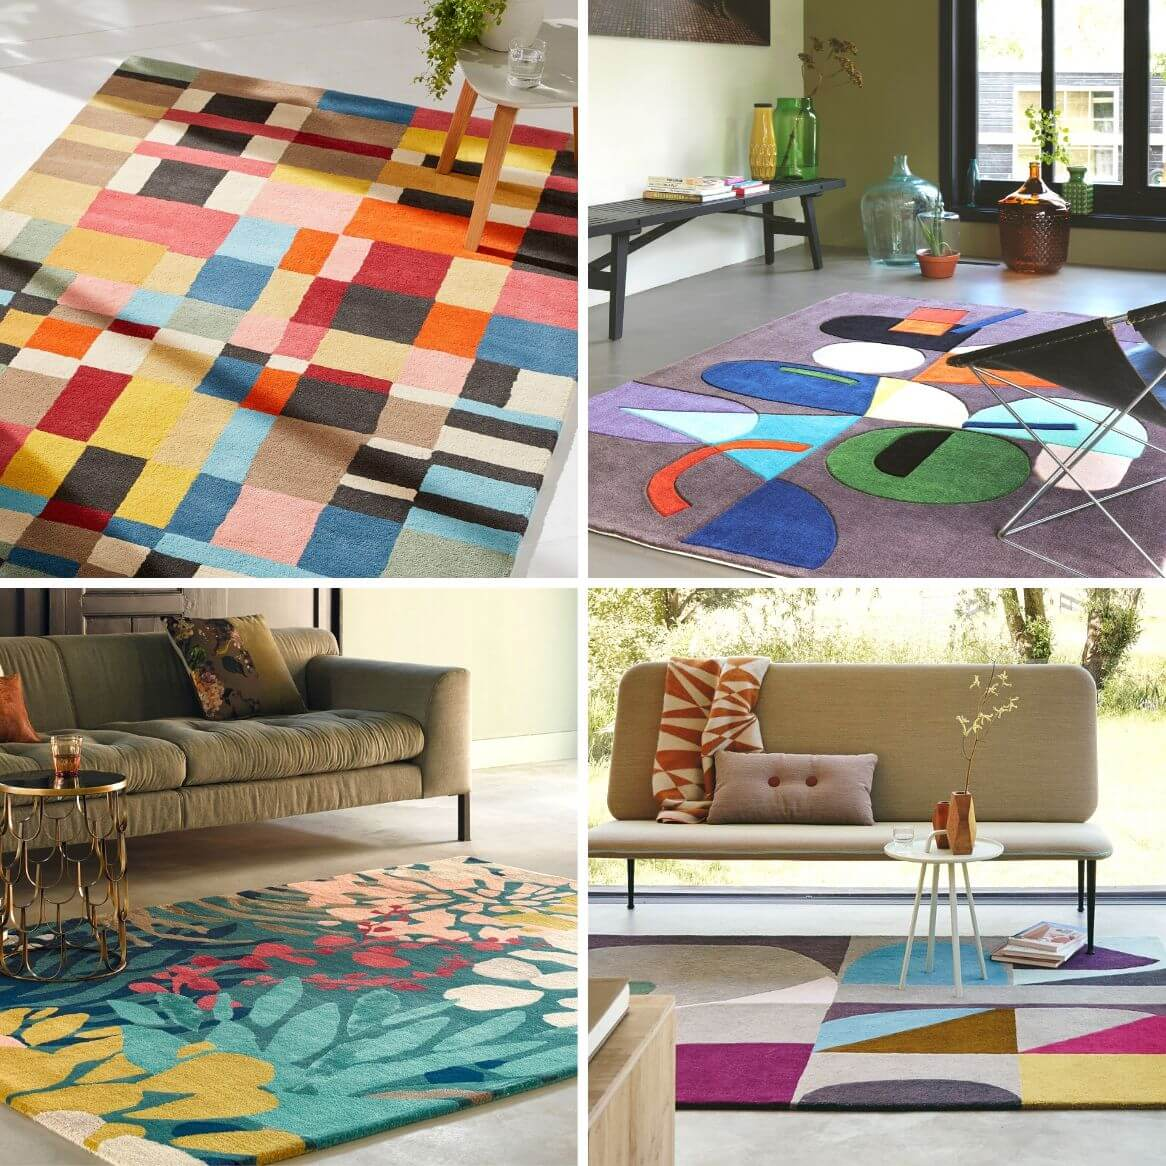 selection tapis design colore zeeblog zeeloft